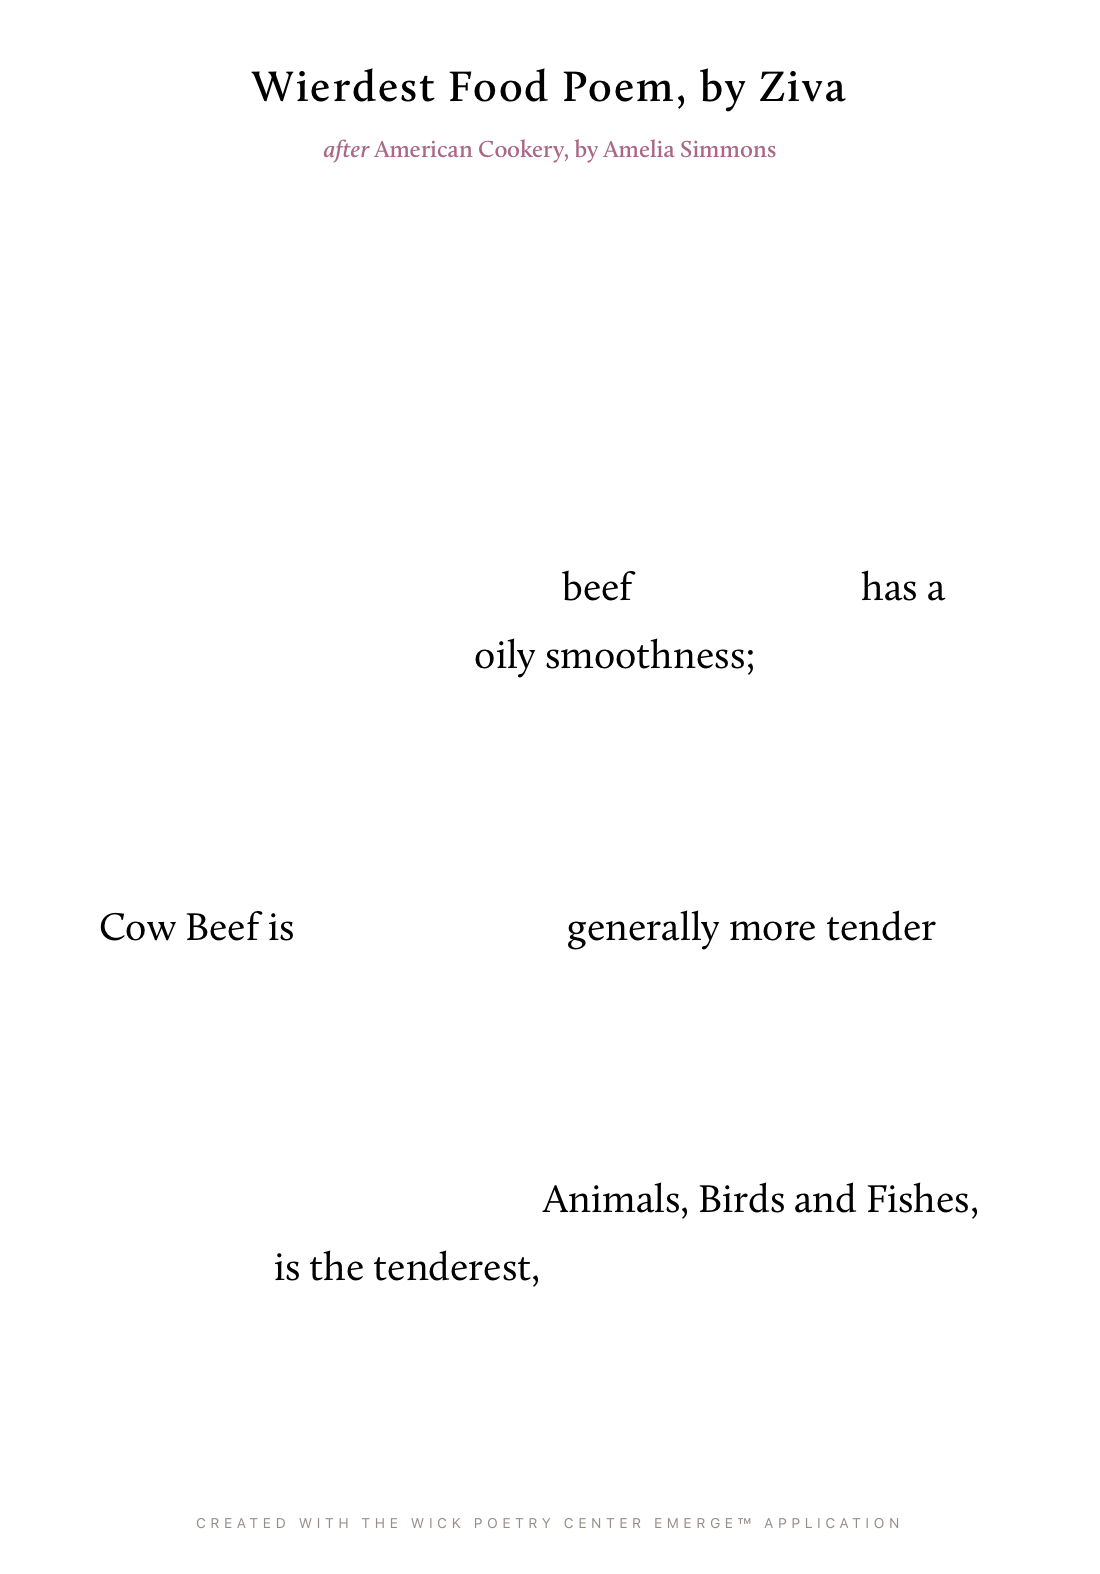 Wierdest Food Poem